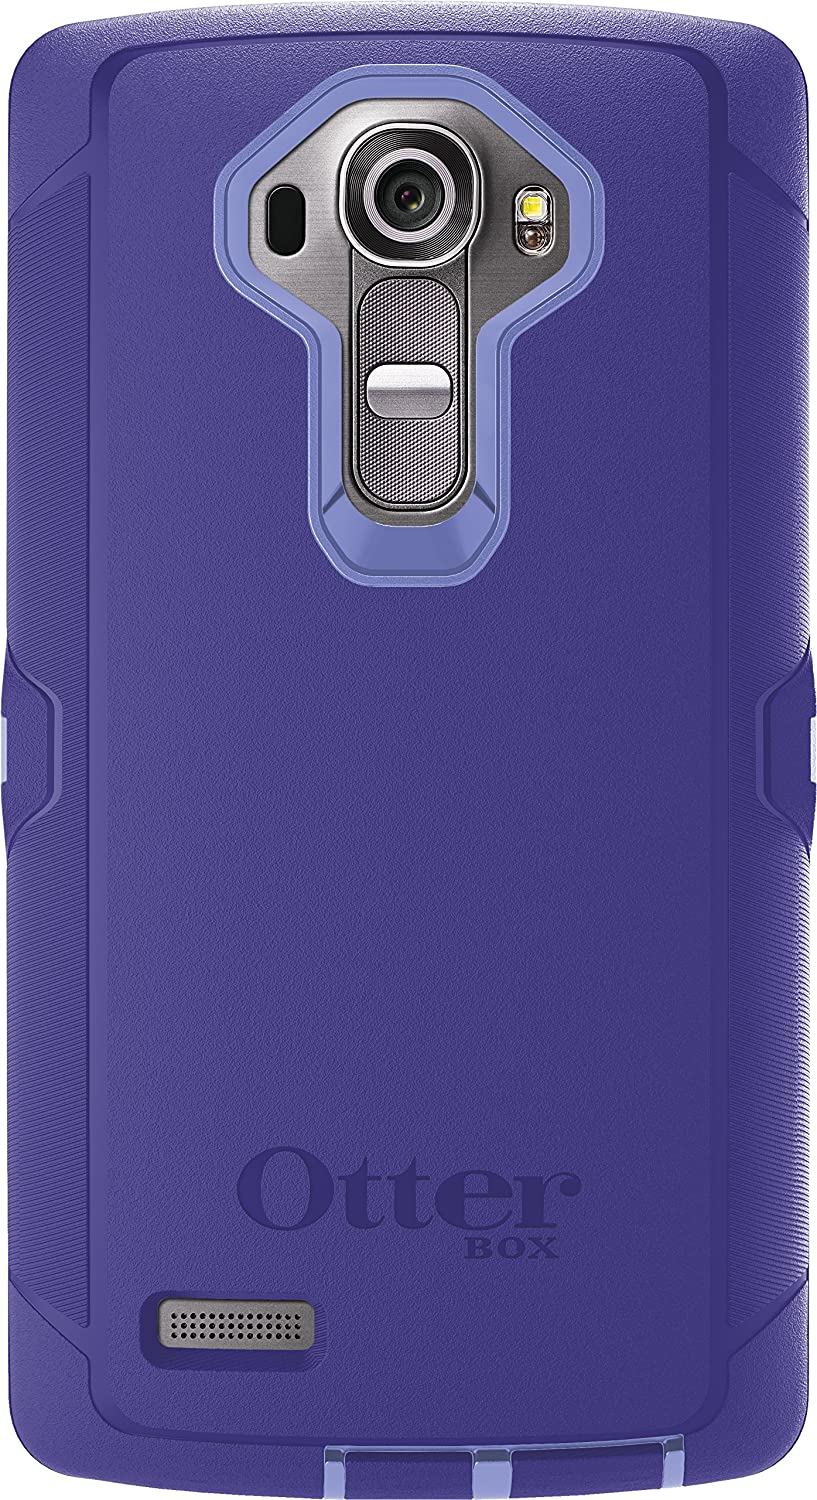 OtterBox Defender Case for LG G4 - Retail Packaging - Periwinkle Purple/Liberty Purple